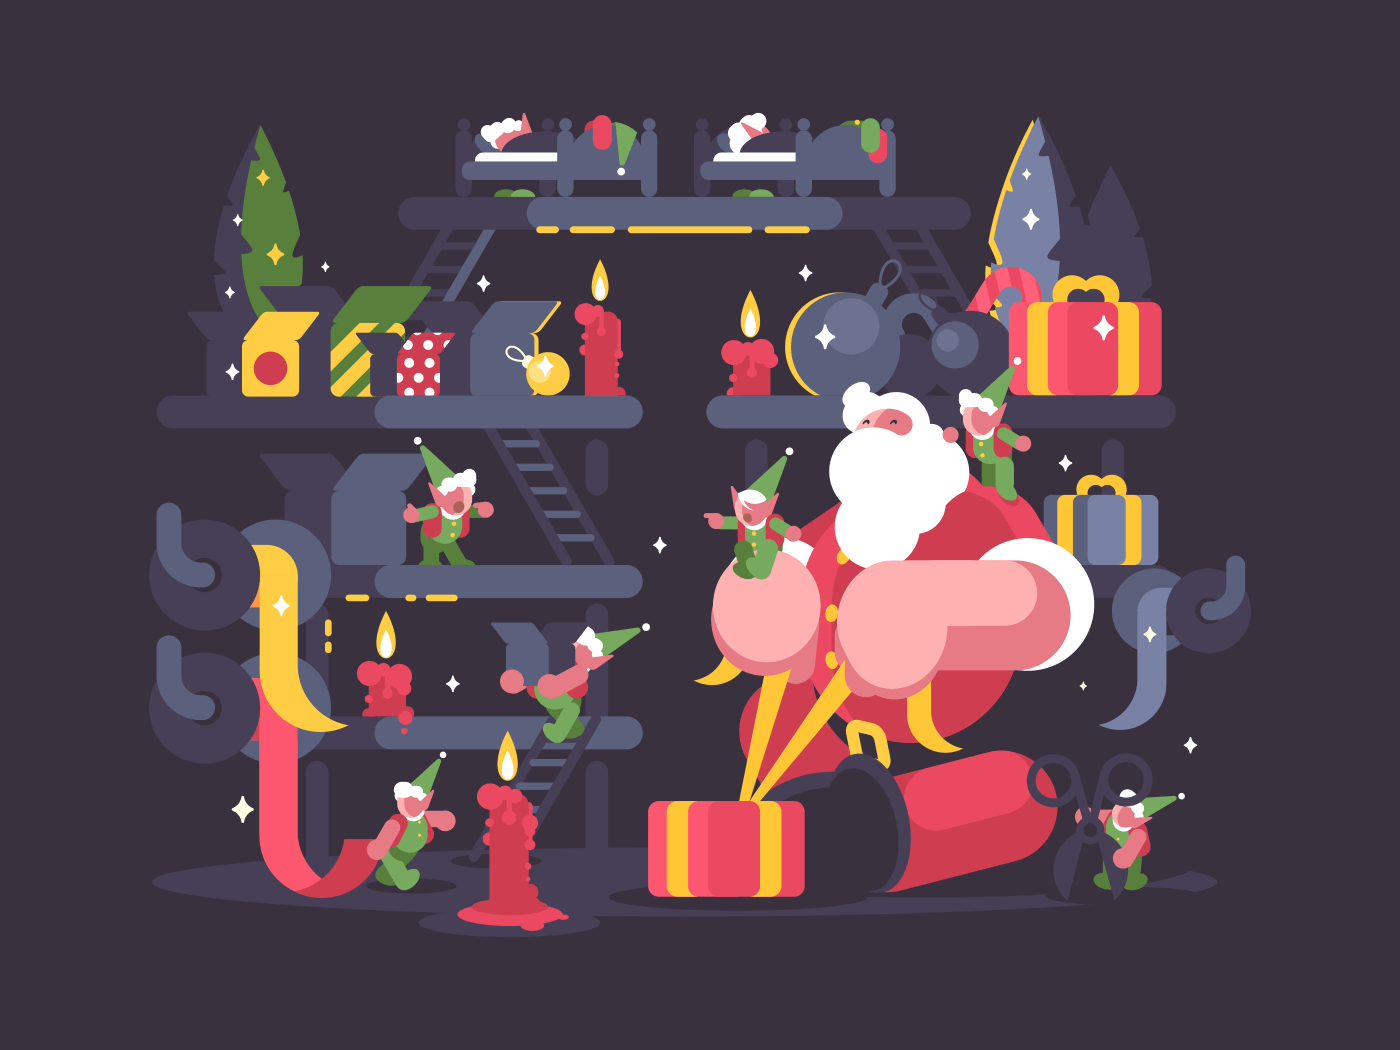 Santa Claus and elves pack gifts for Christmas. Vector illustration